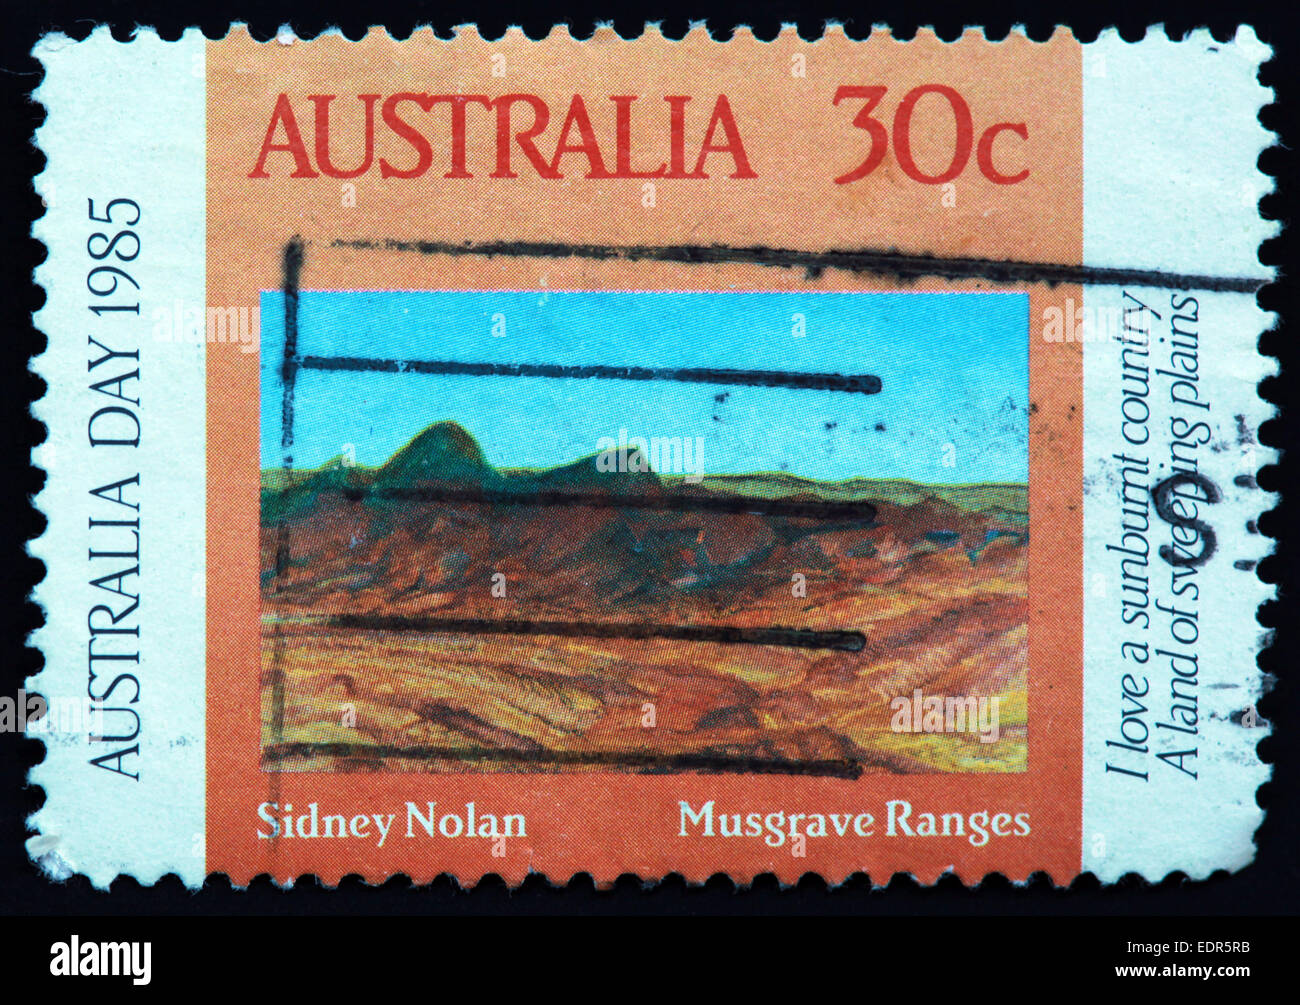 Used and postmarked Australia / Austrailian Stamp 30c day 1985 Sidney Nolan Musgrave Ranges Stock Photo